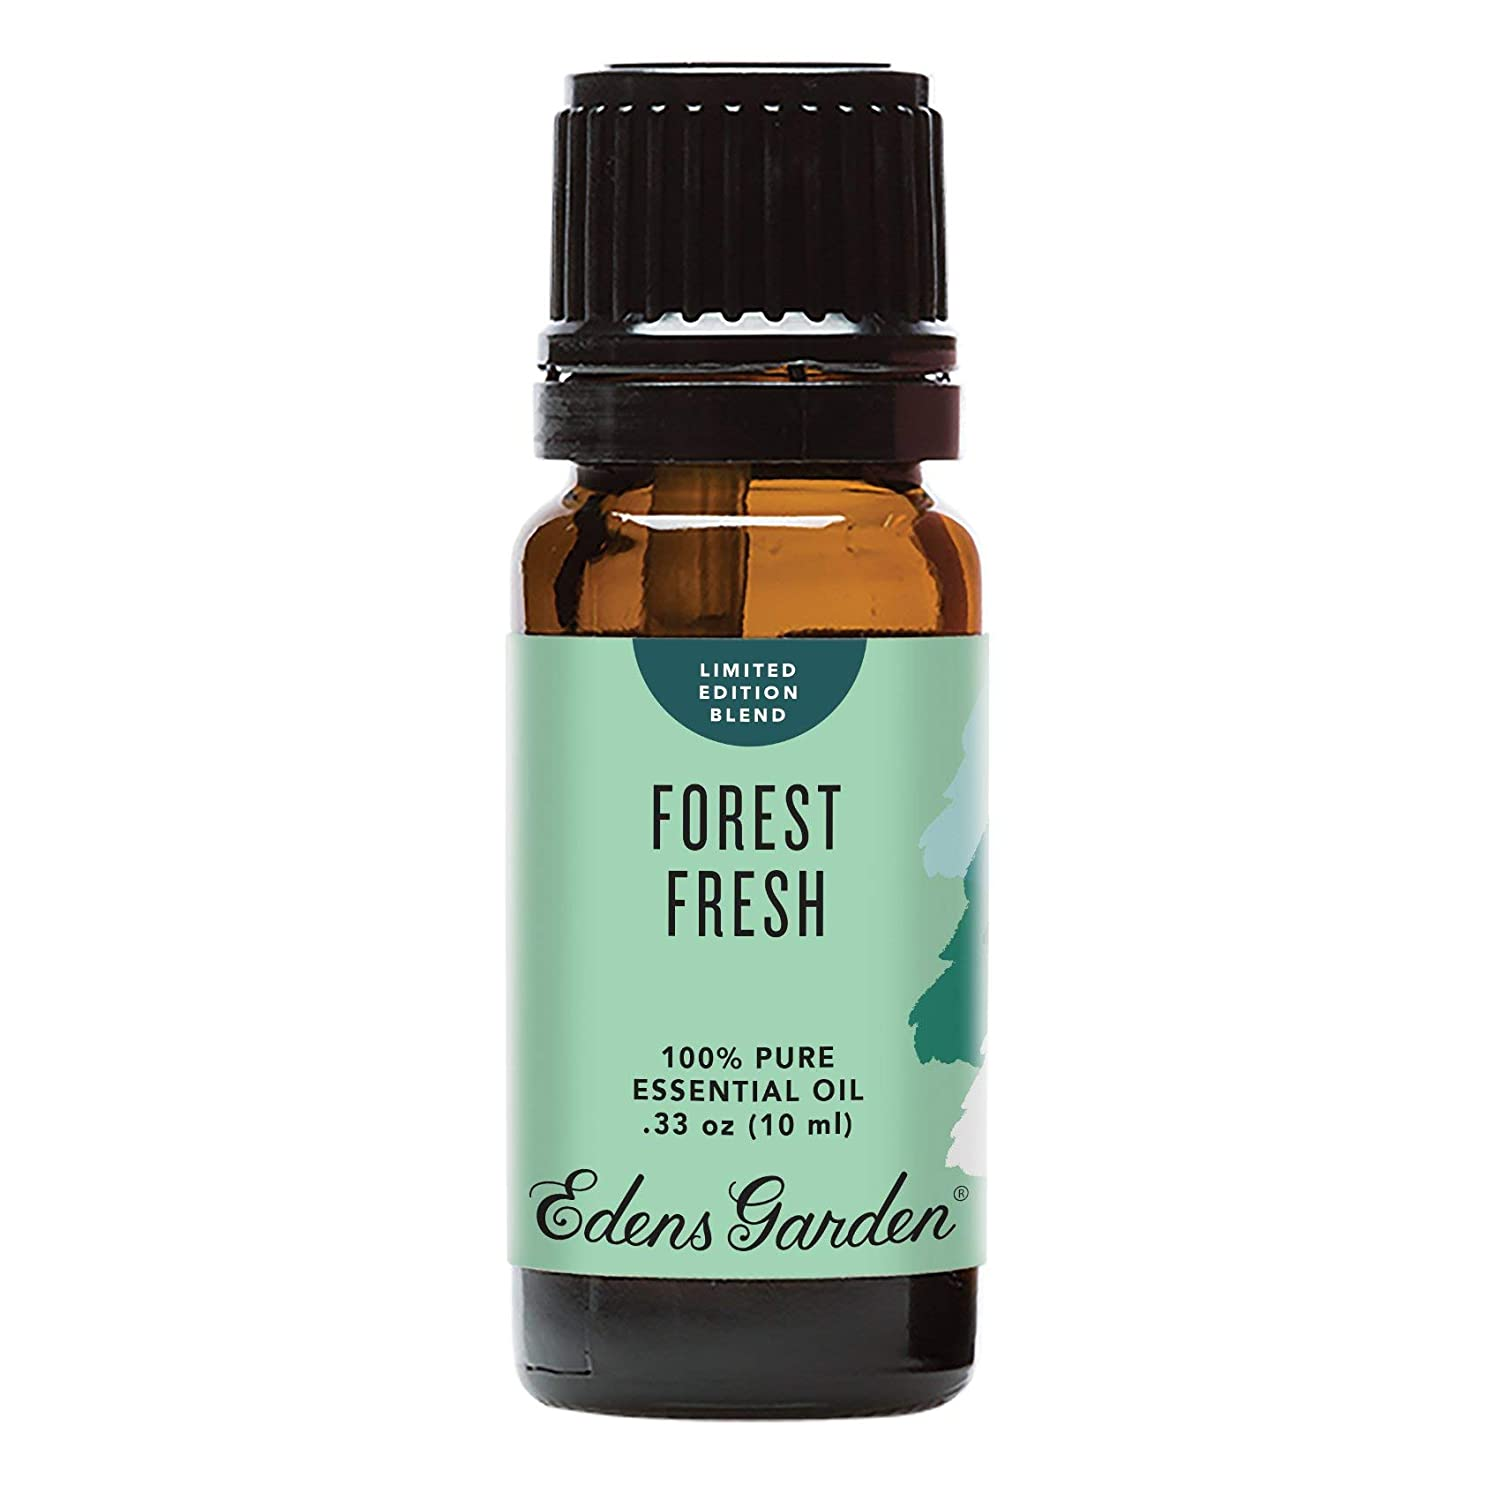 Edens Garden Forest Fresh Holiday Blend, Essential Oil Synergy Blend, 100% Pure Therapeutic Grade, 10 ml